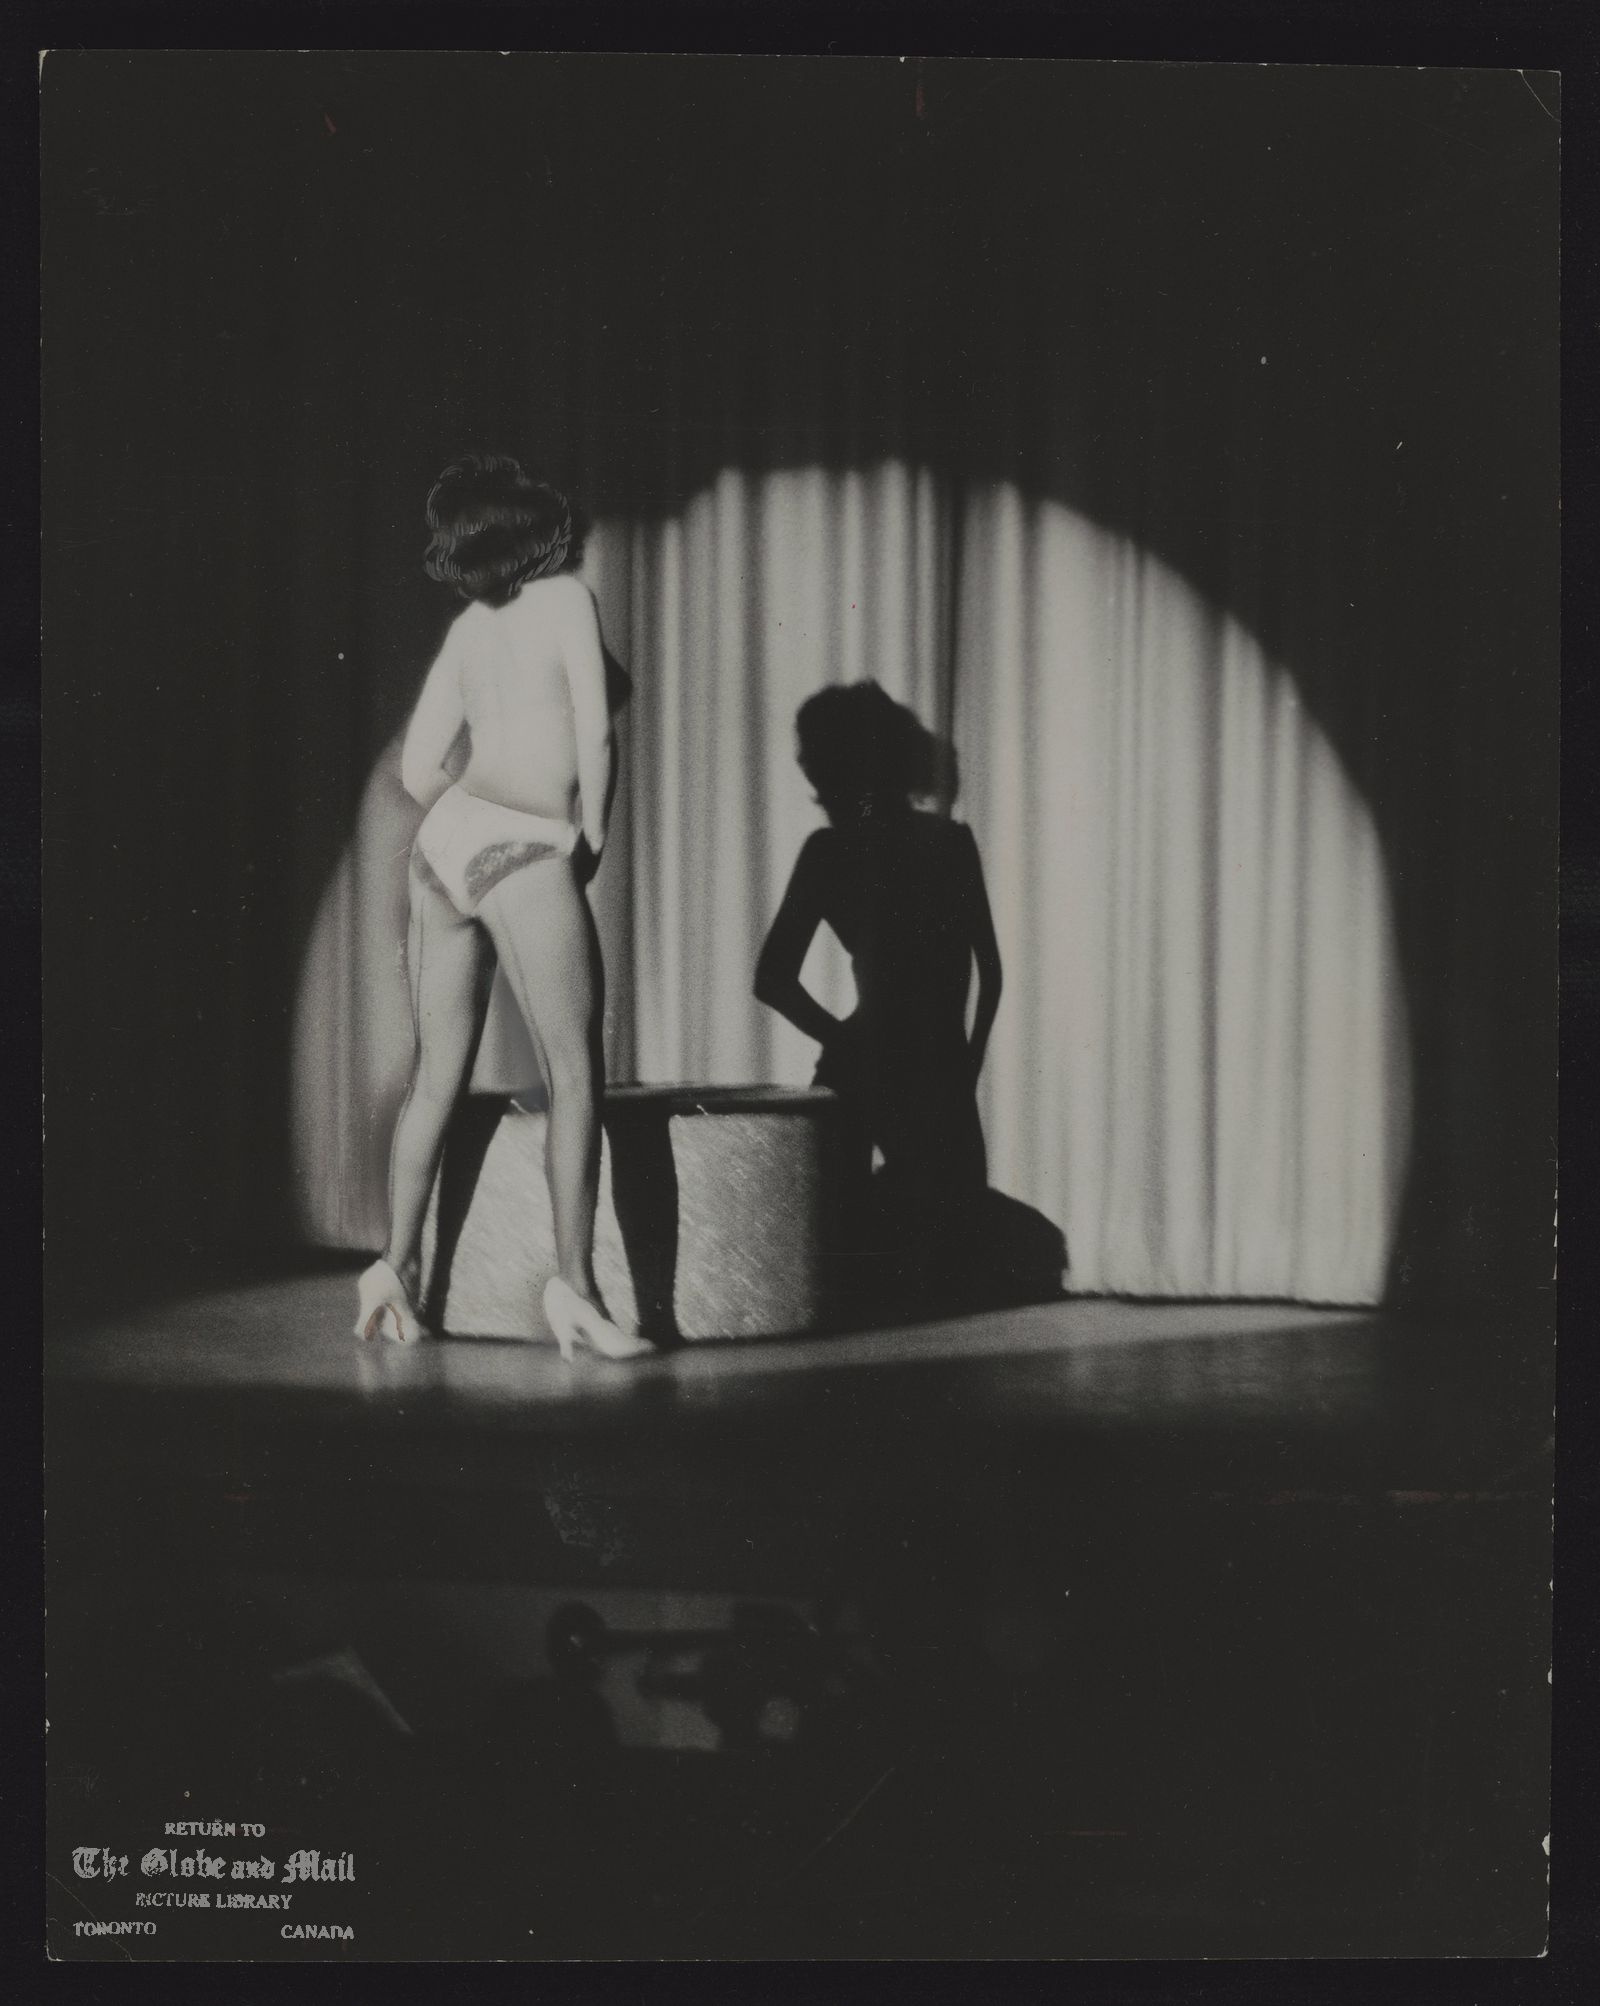 BURLESQUE Sunday in Toronto---Sunny skies and temperatures in the 70s slowed down the crowds for the limited opening of Sunday movies in Toronto yesterday, except for one theatre combining burlesque with a movie. There, business began to build up later.